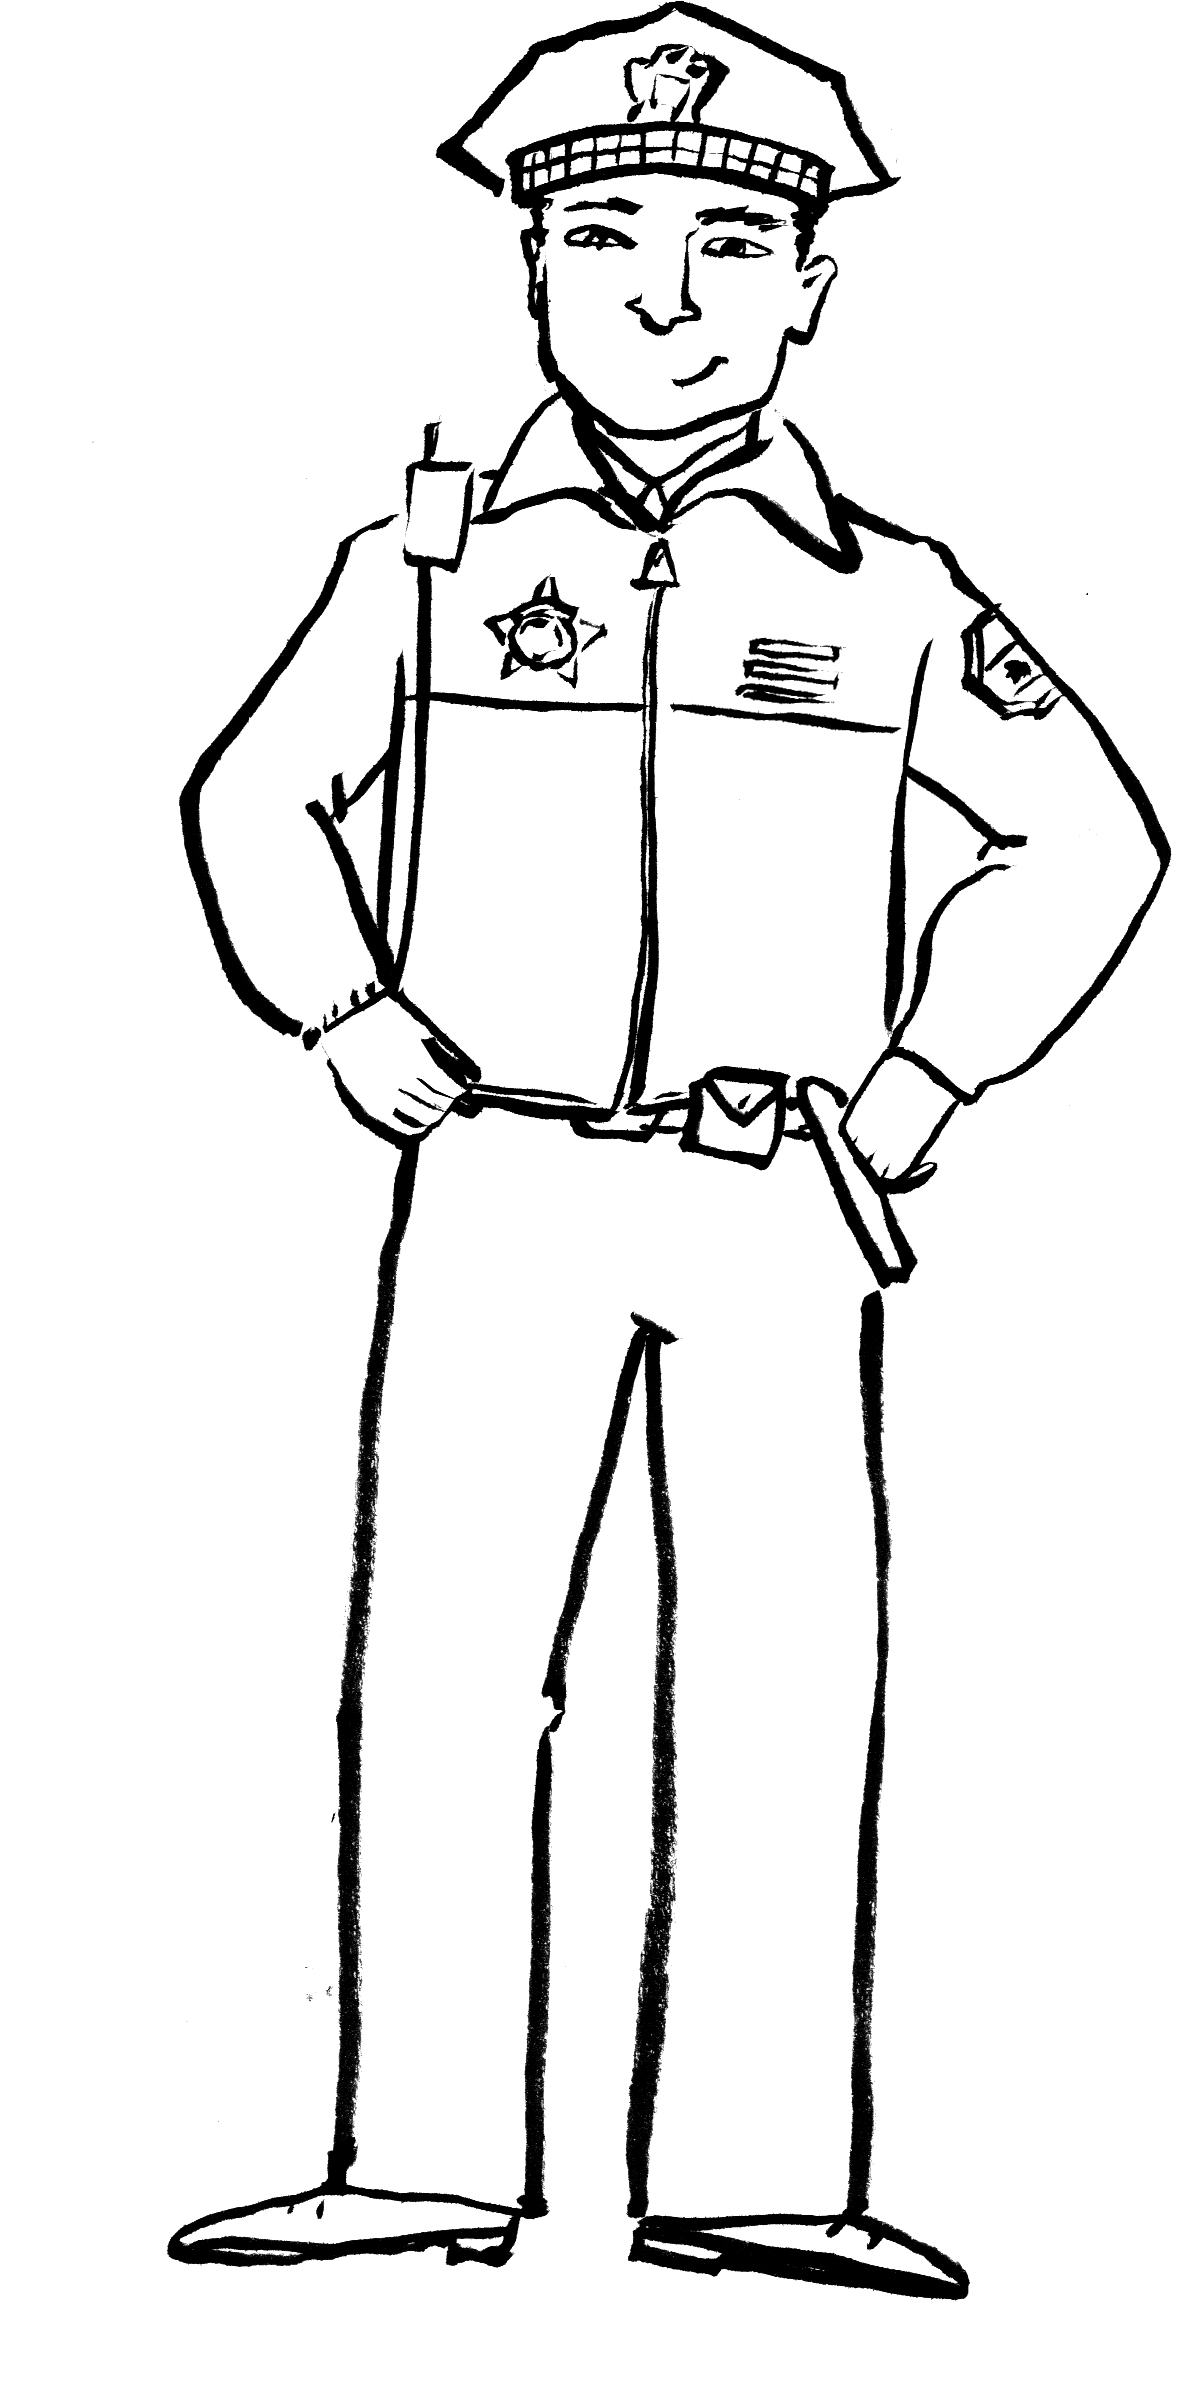 childs coloring pages about police - photo#24